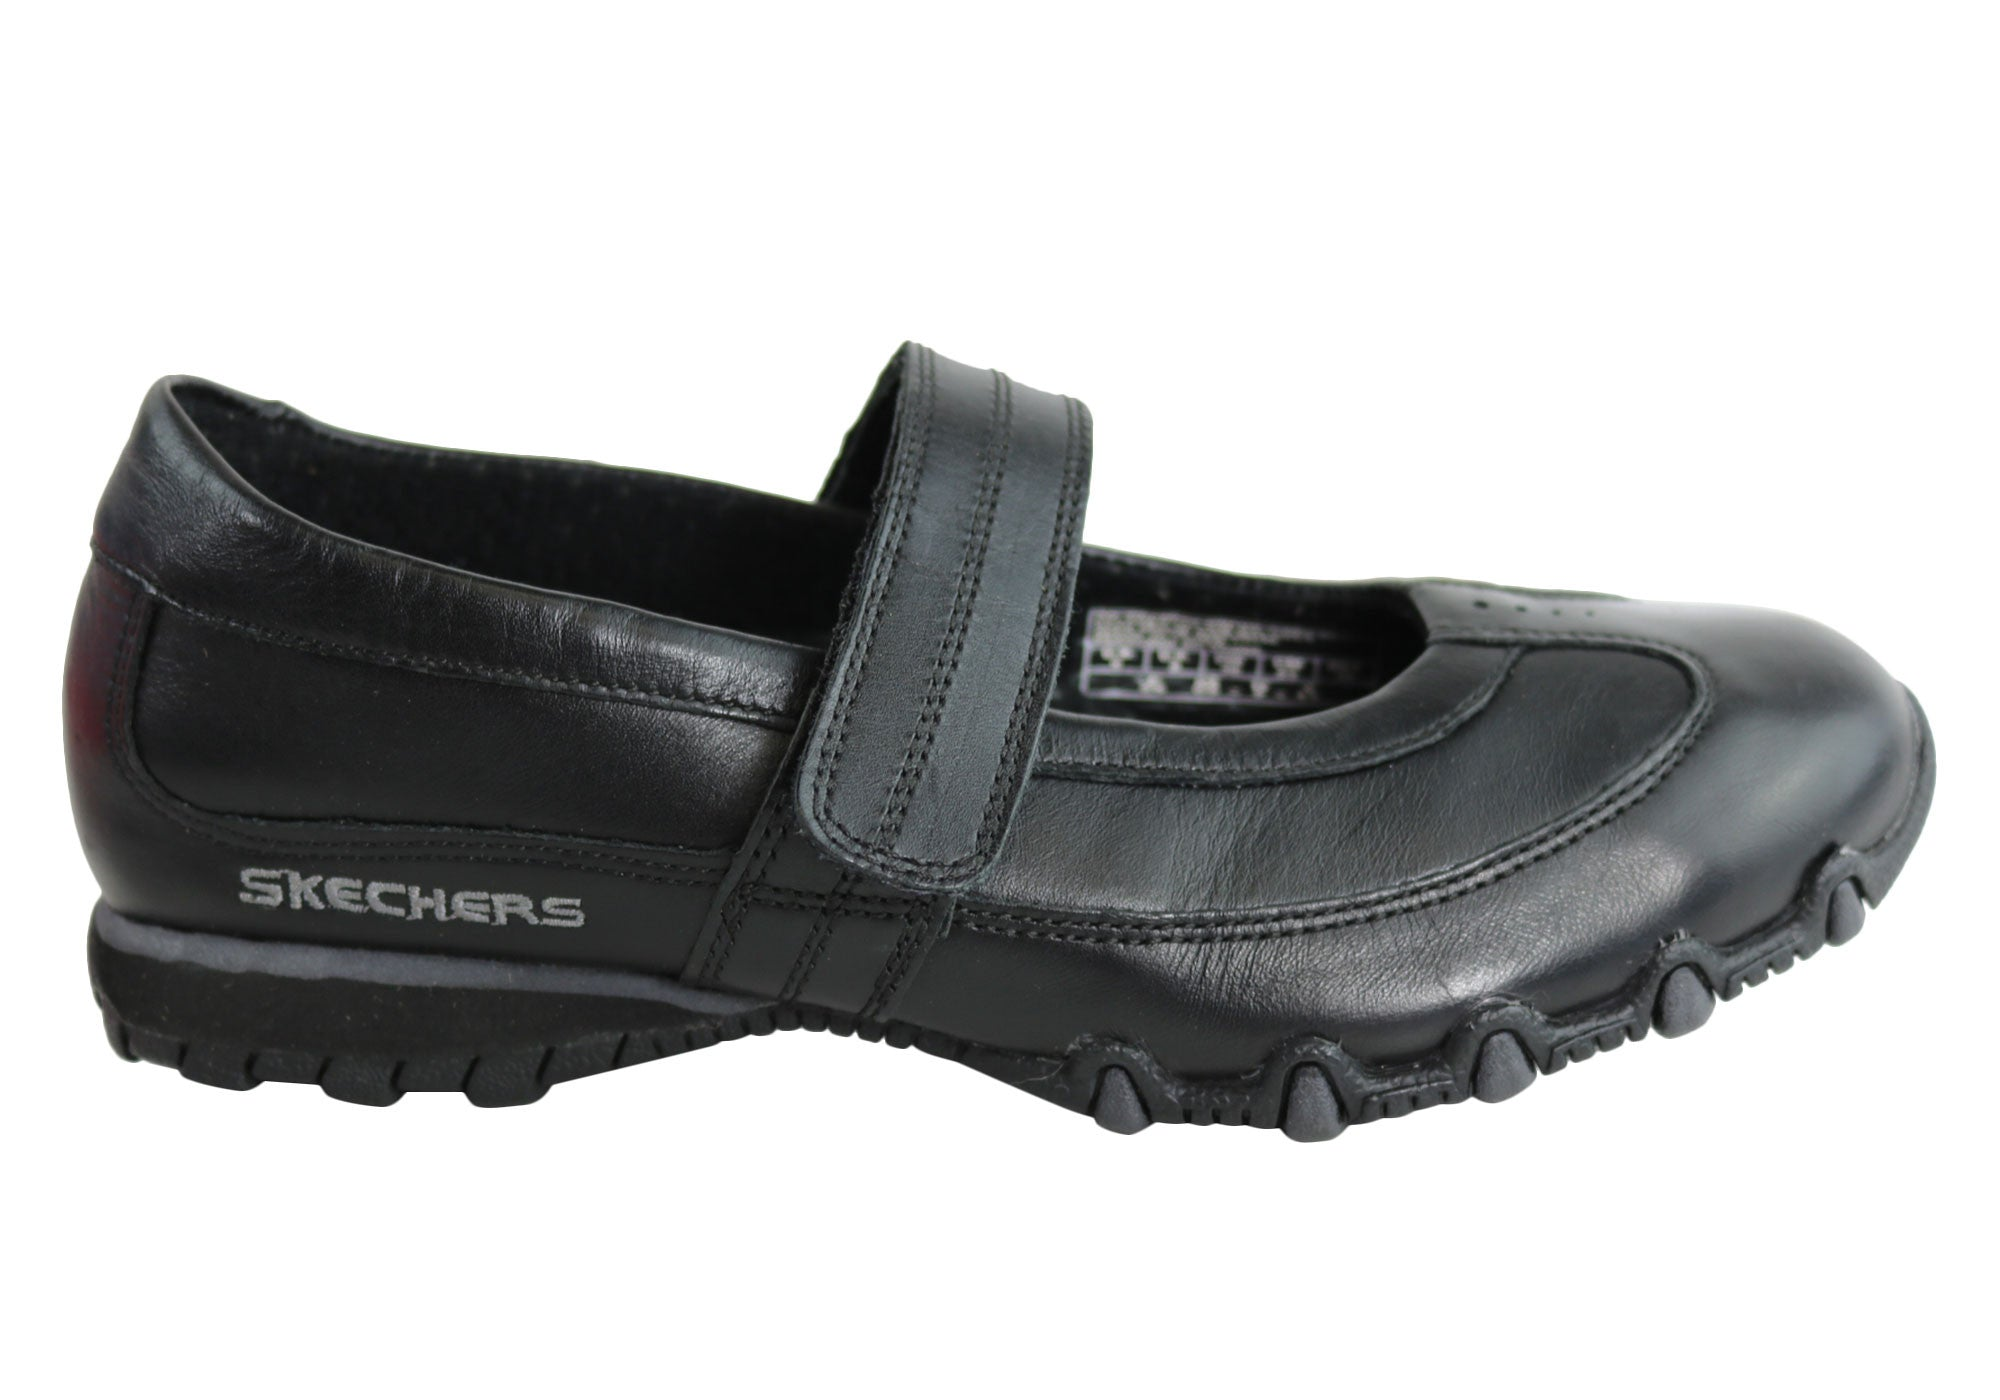 Home Skechers Bikers Classic Womens Mary Jane Style Adjustable Strap Shoes.  Black ... ab59d167a573